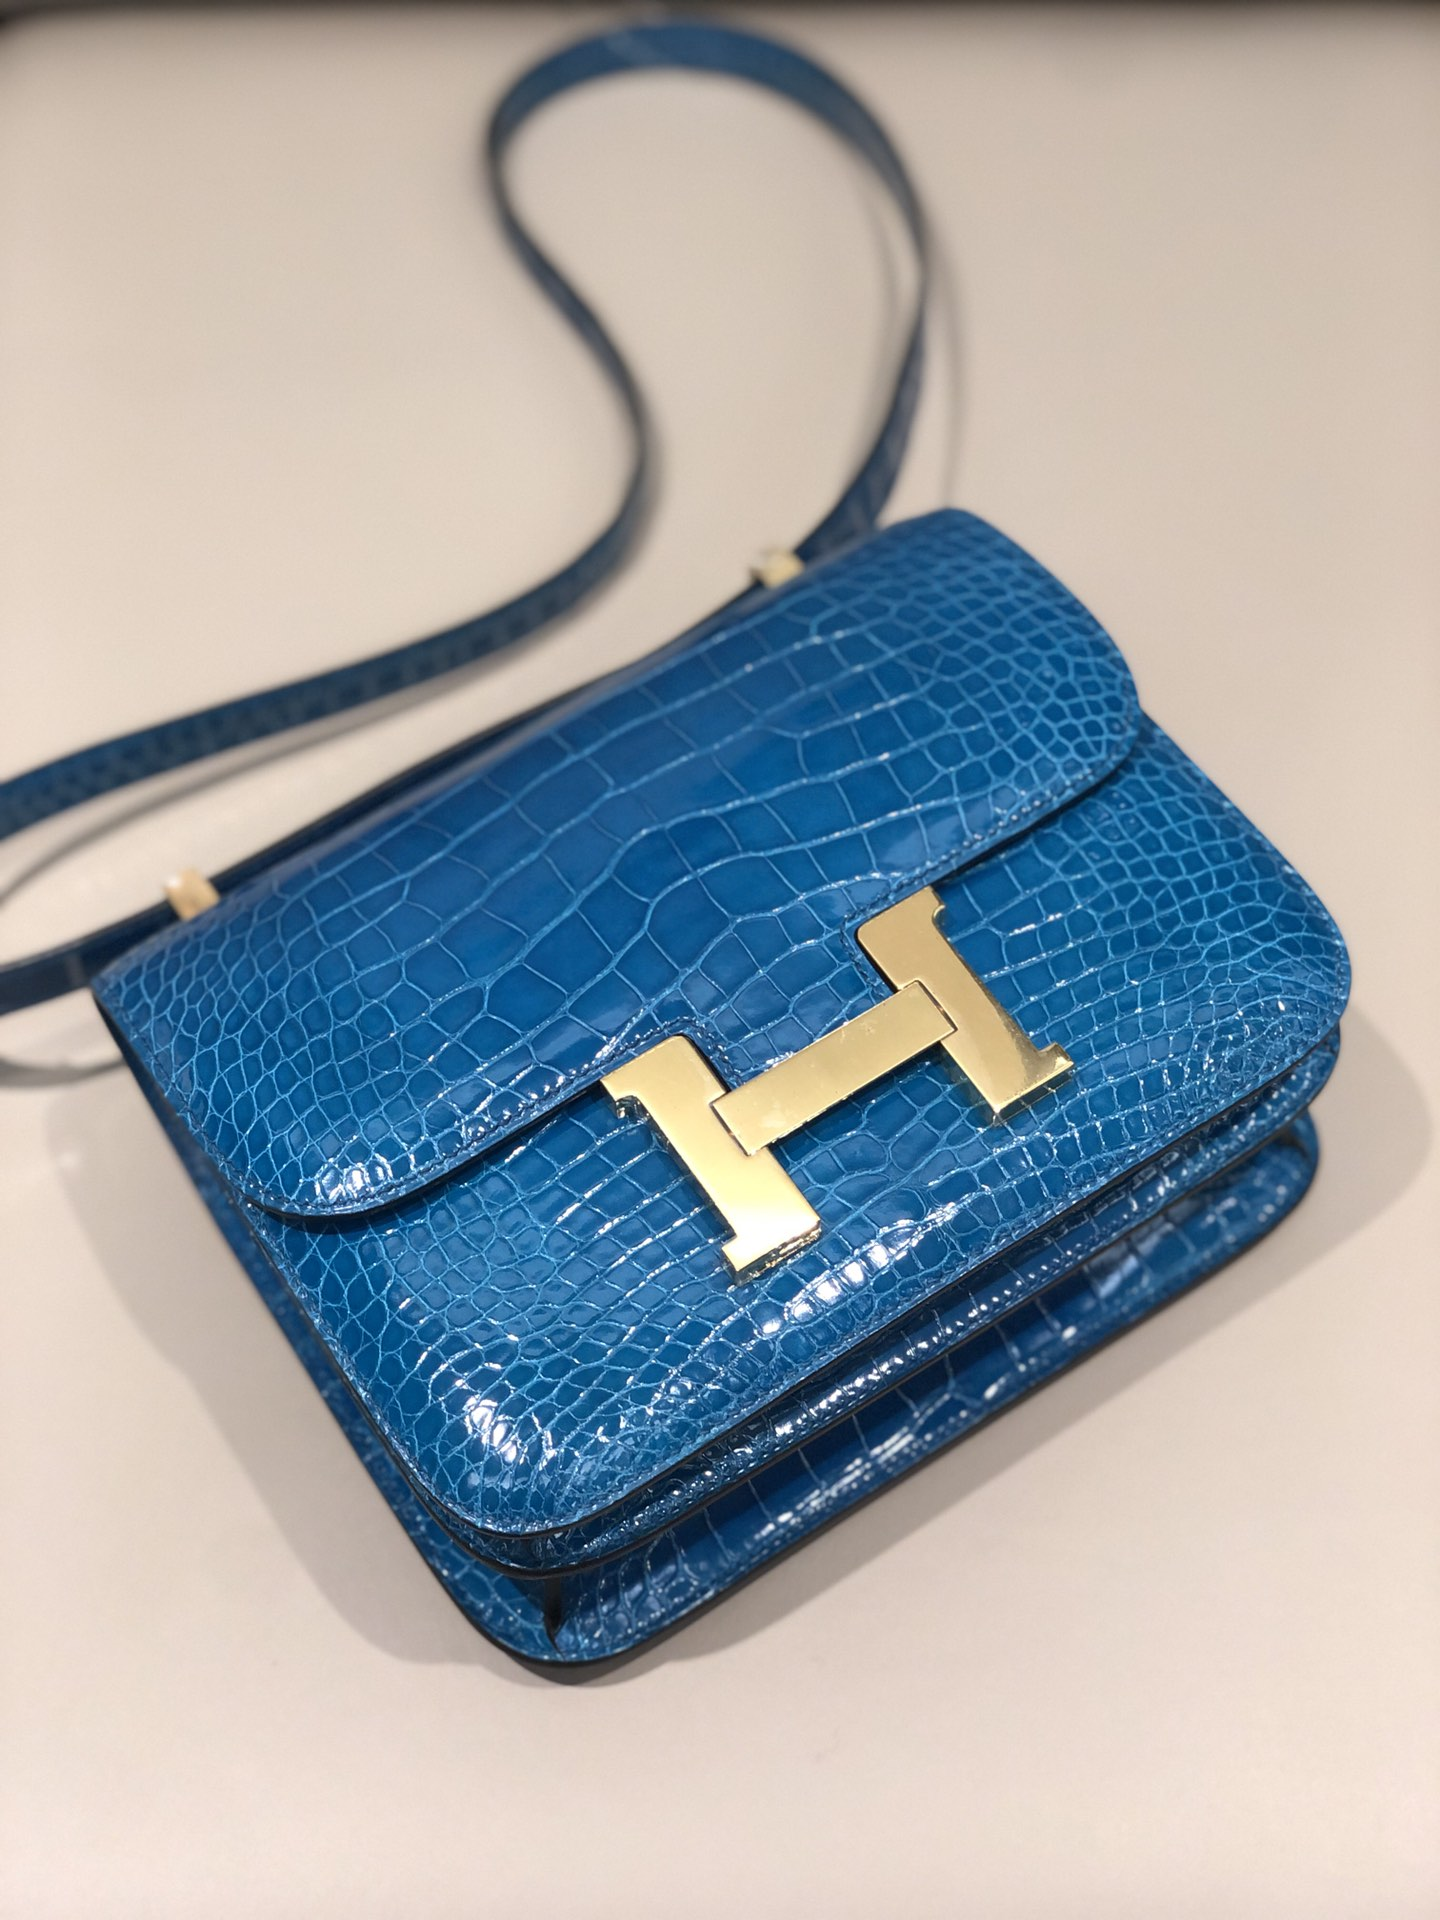 Stock Hermes 7W Blue Izmir Shiny Crocodile Constance Bag24cm Gold Hardware